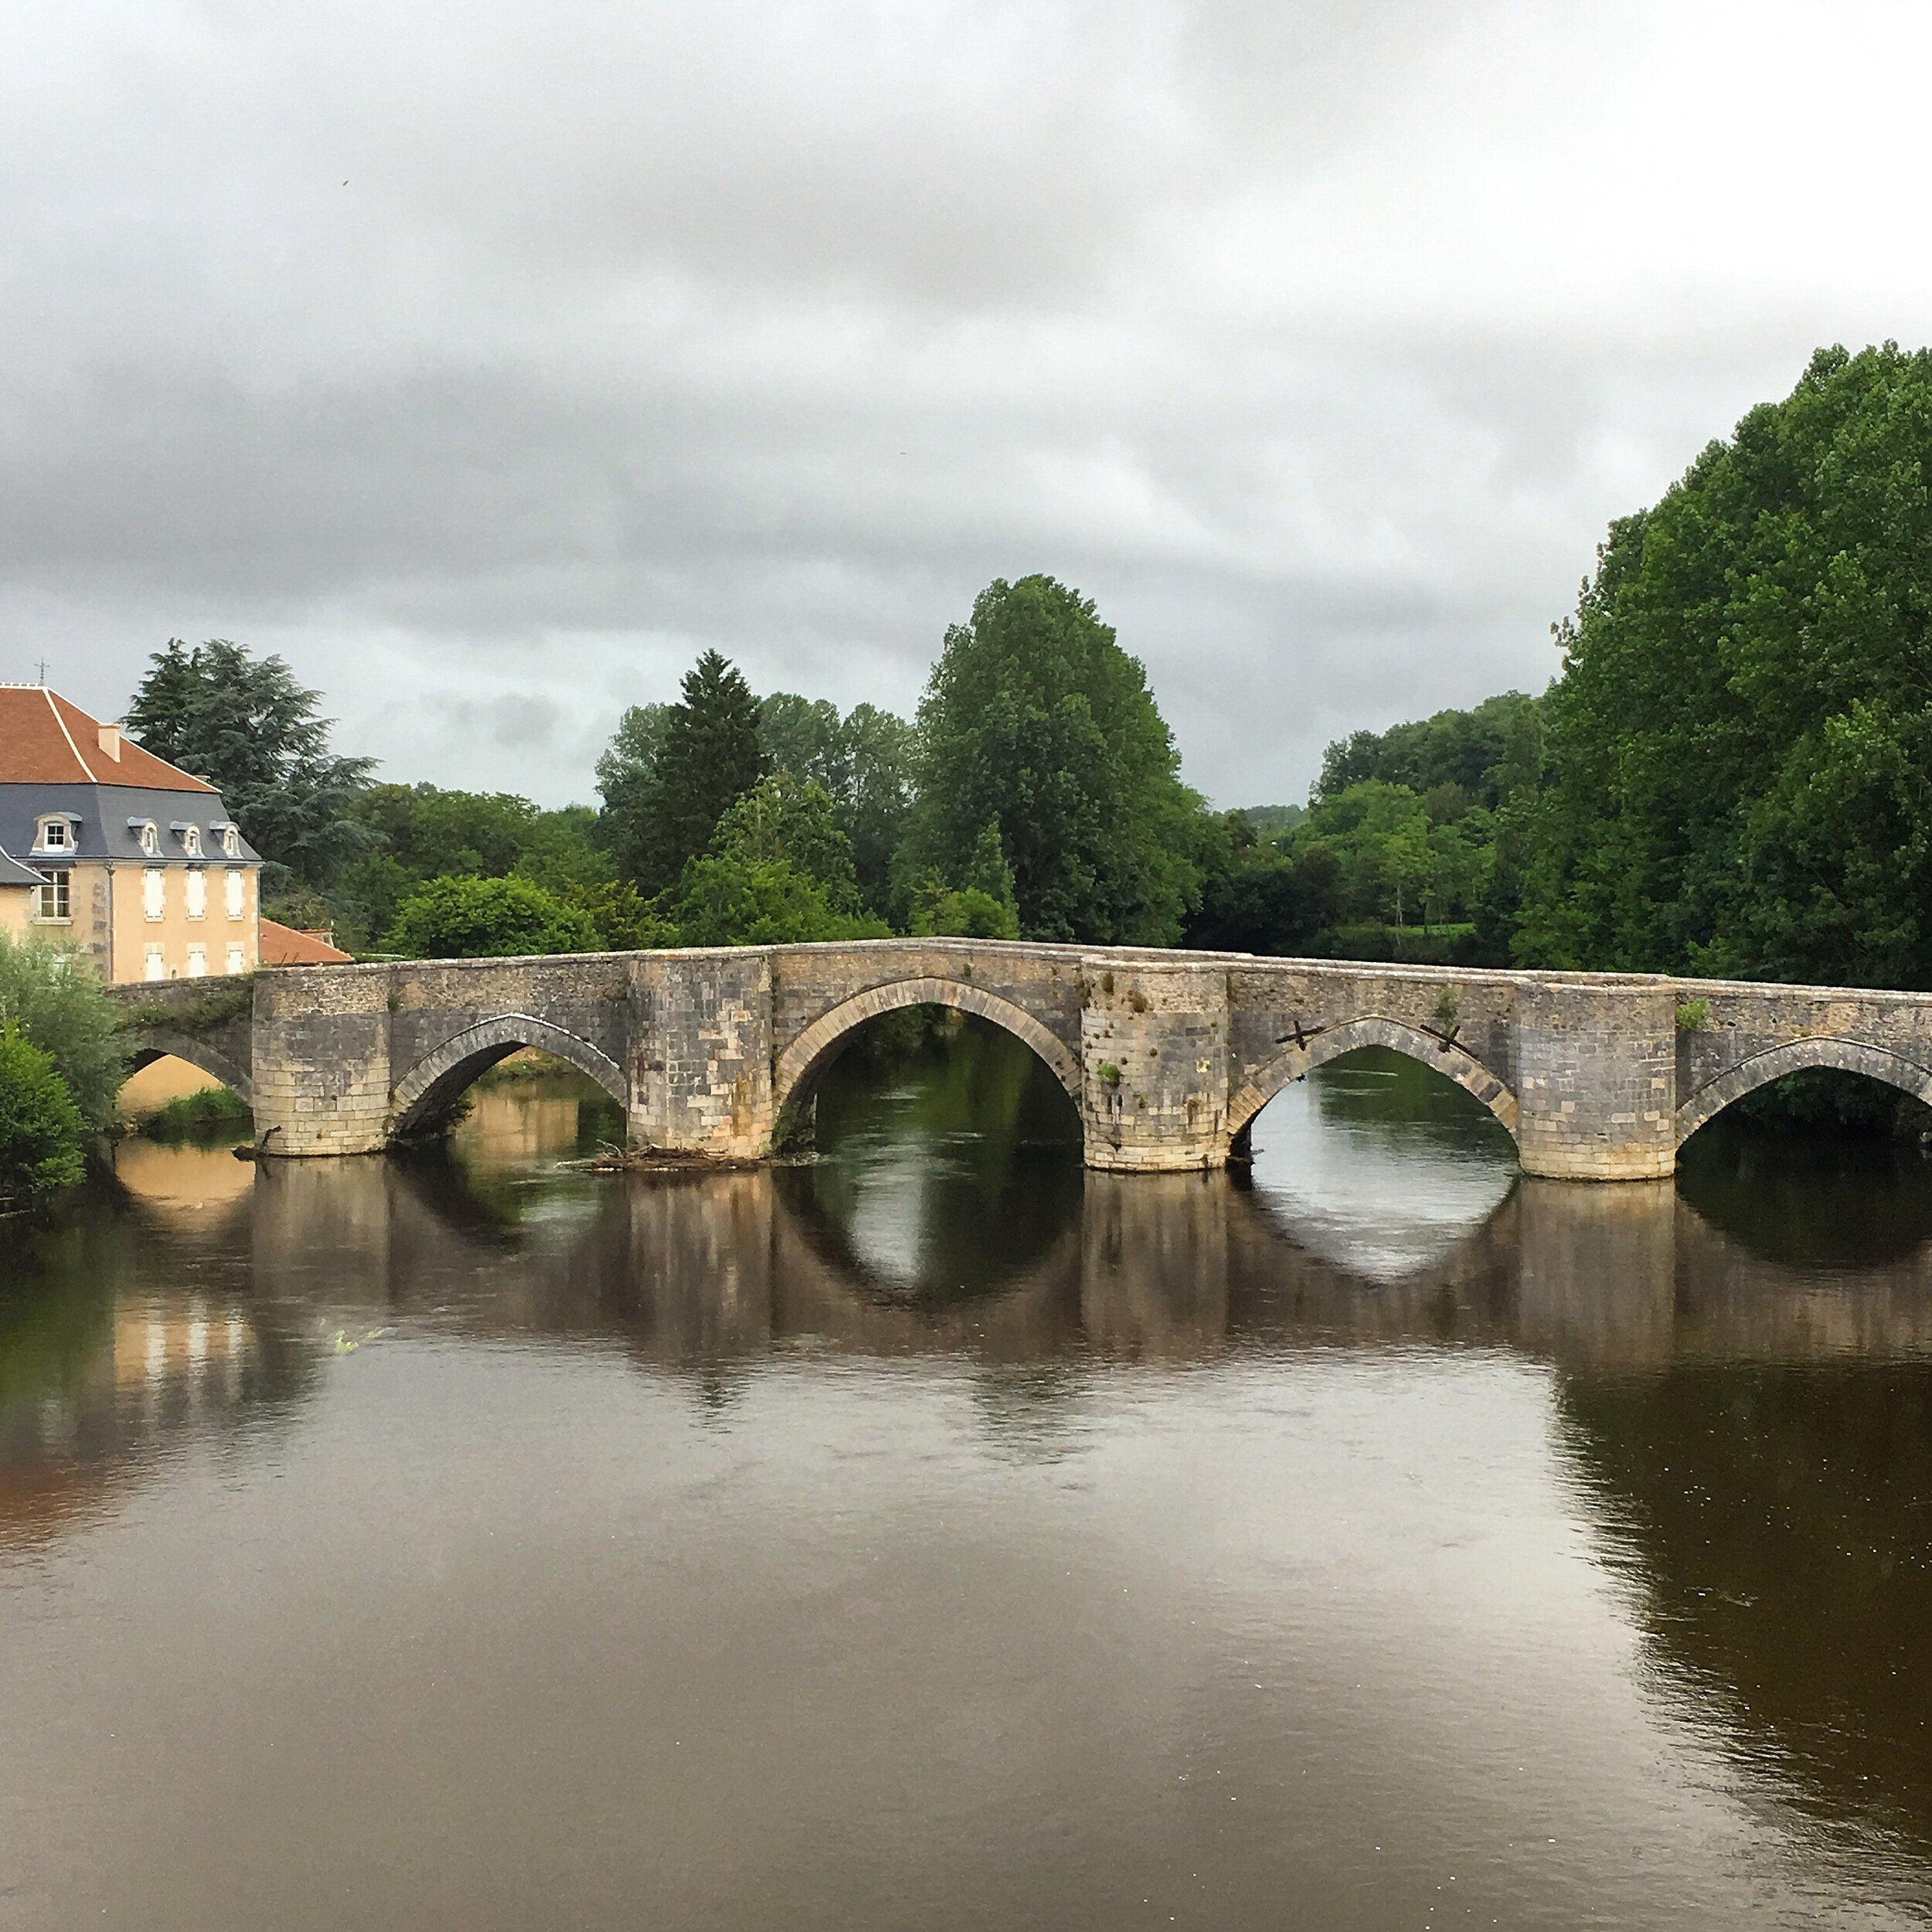 Legendary Loire: Source to Sea - 13-14 days(Optional Rest Day)